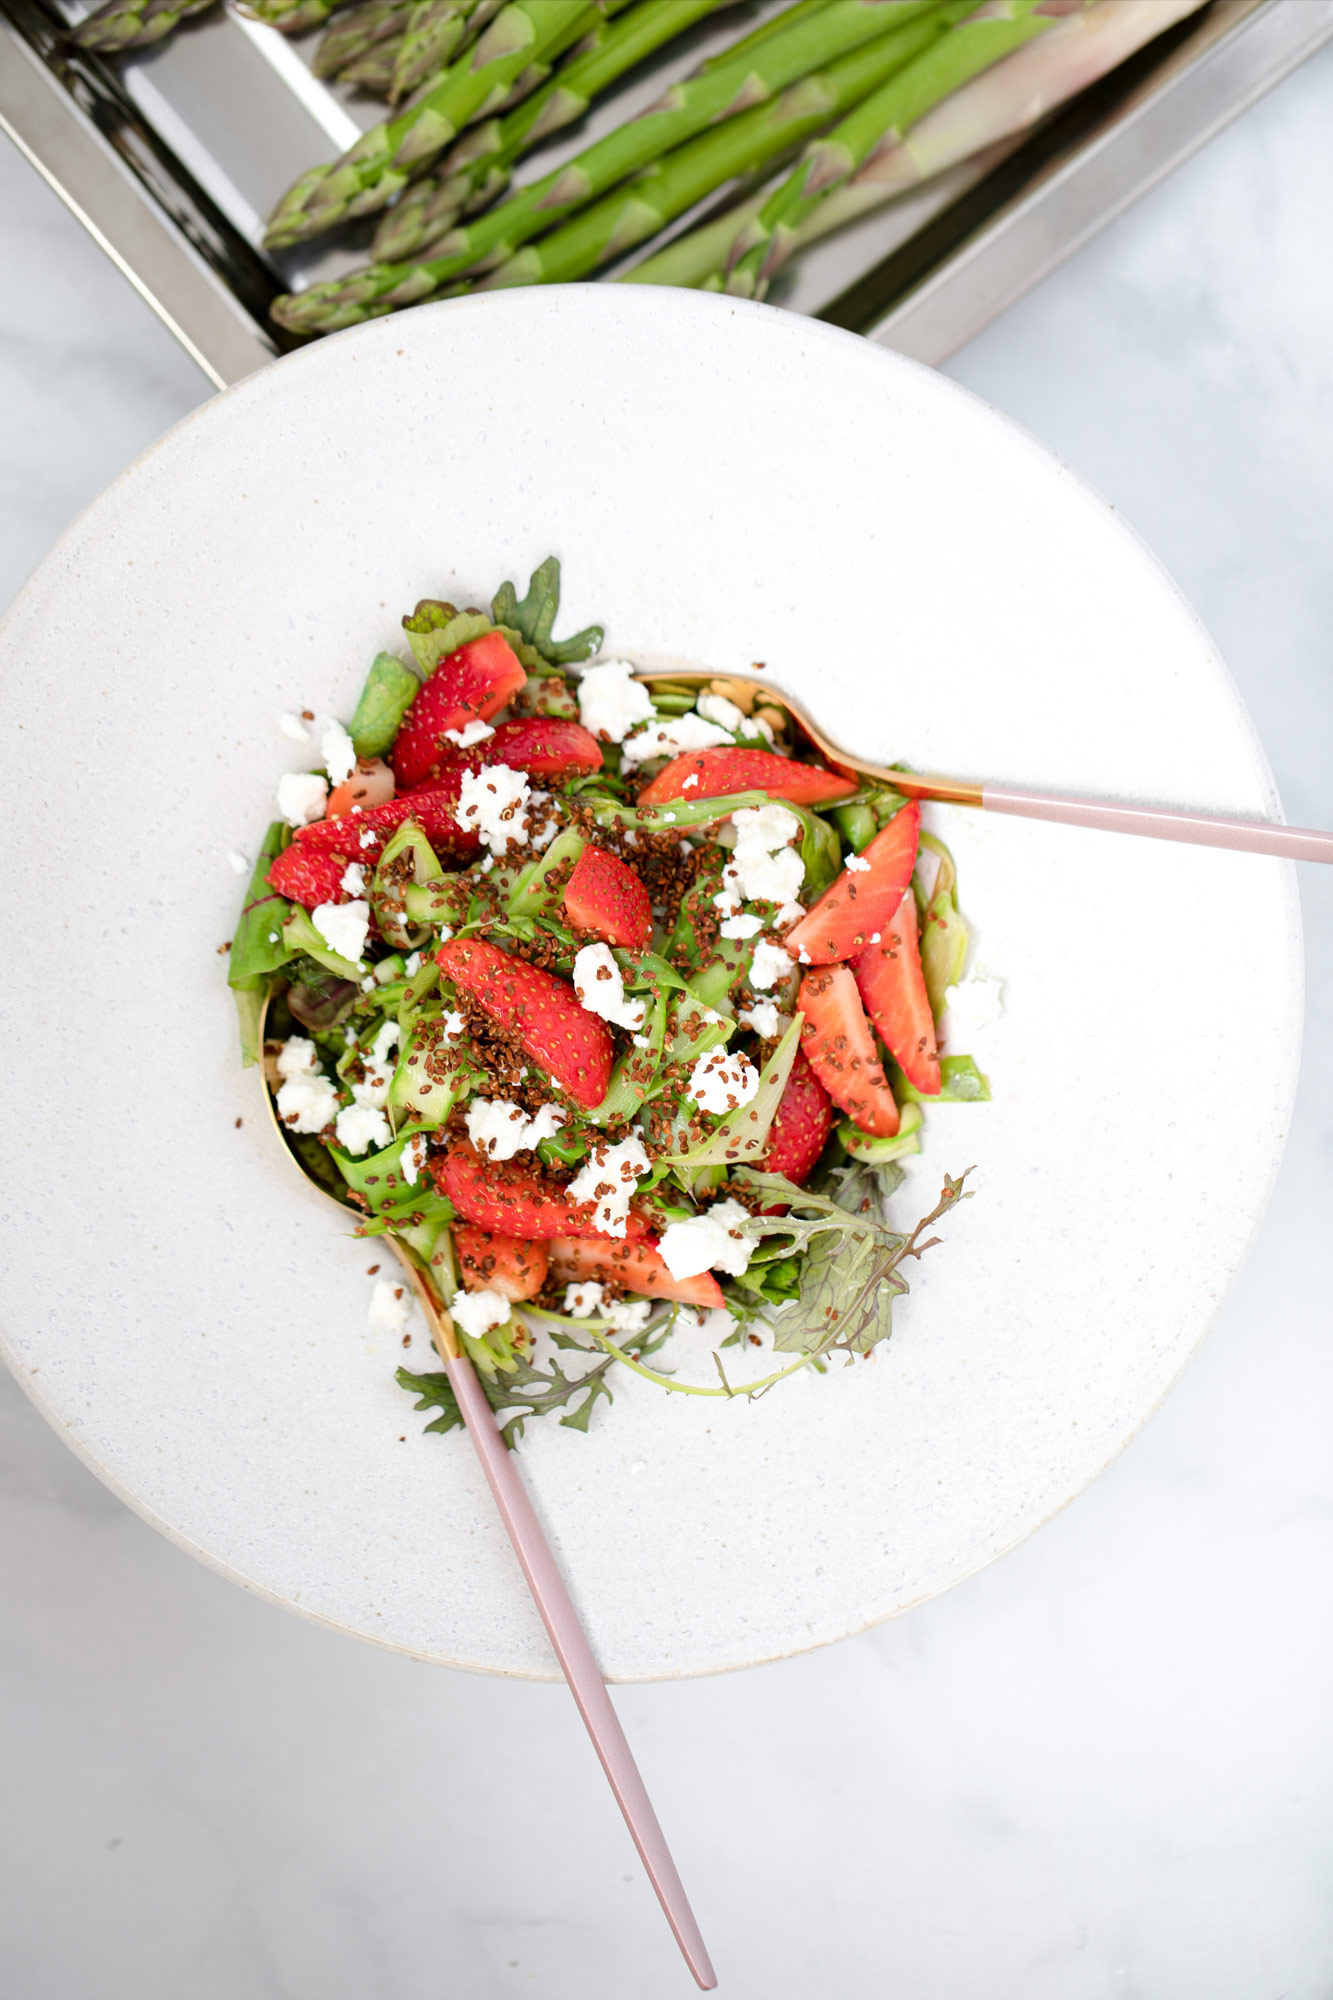 Roasted Asparagus-Strawberry Salad with sprouted alfalfa by Bakd&Raw